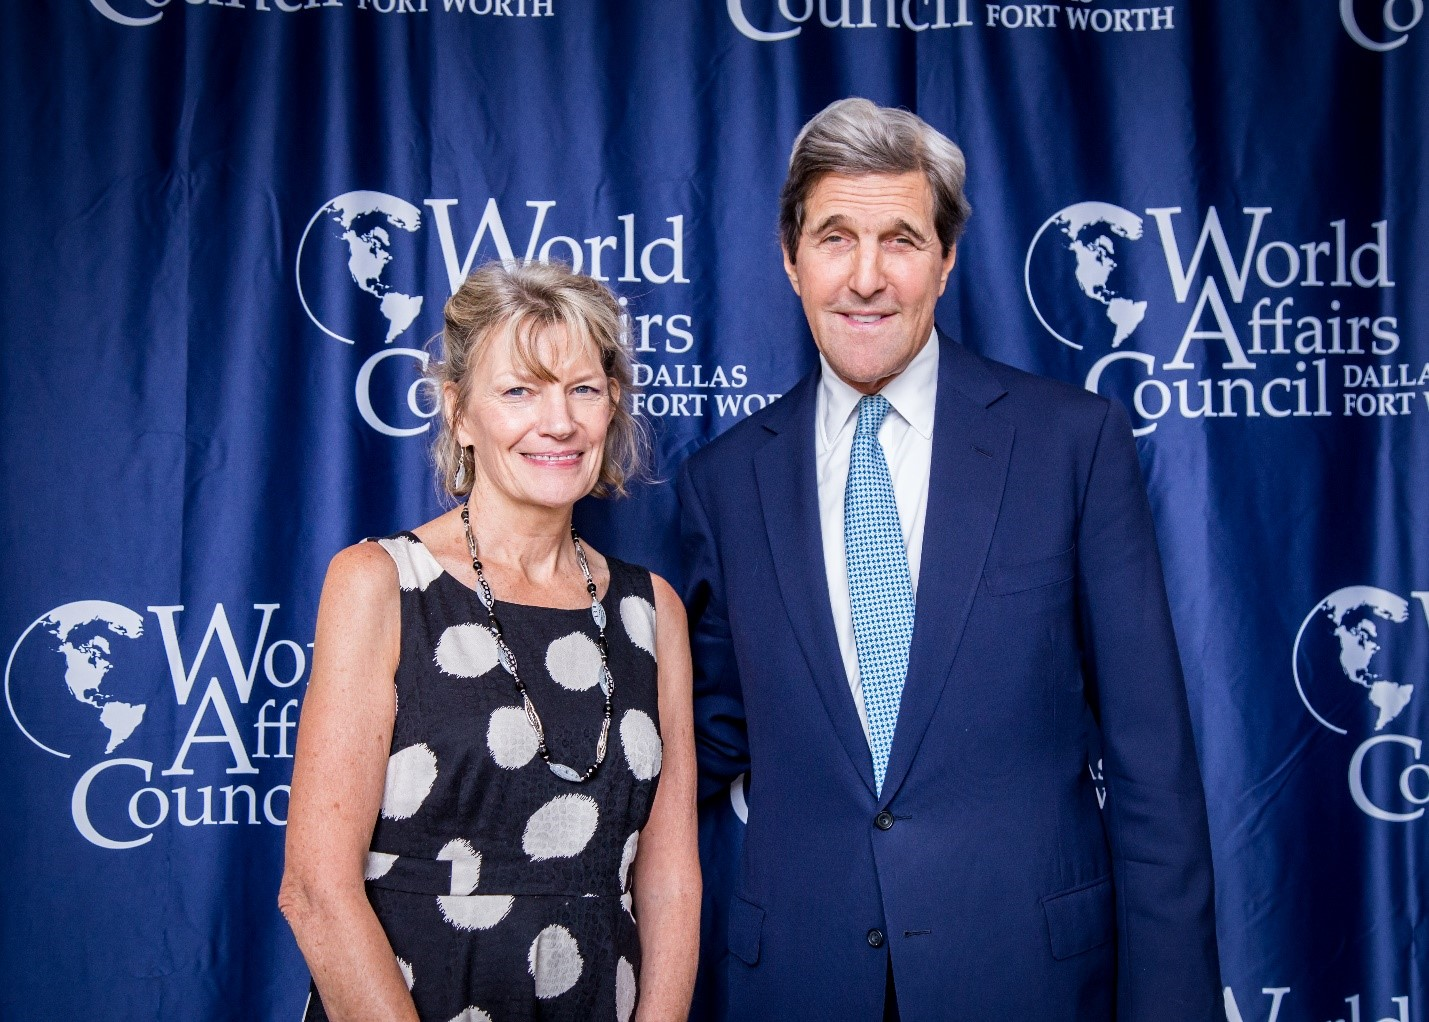 Dr. Rasmussen with John Kerry